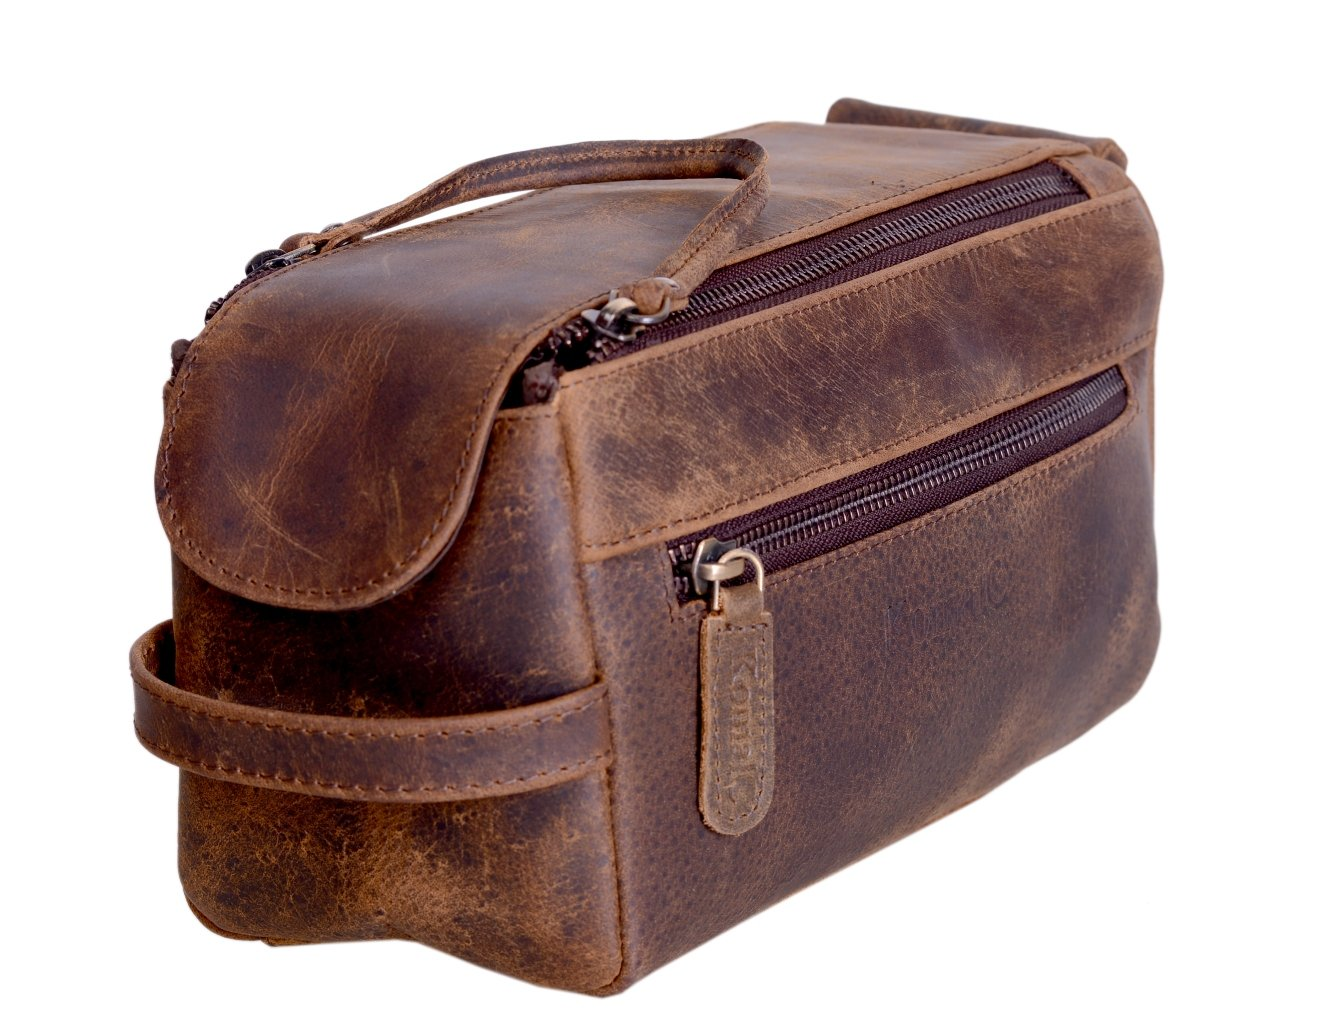 KOMALC Genuine Buffalo Leather Unisex Toiletry Bag Travel Dopp Kit 4f832c8d23fa0